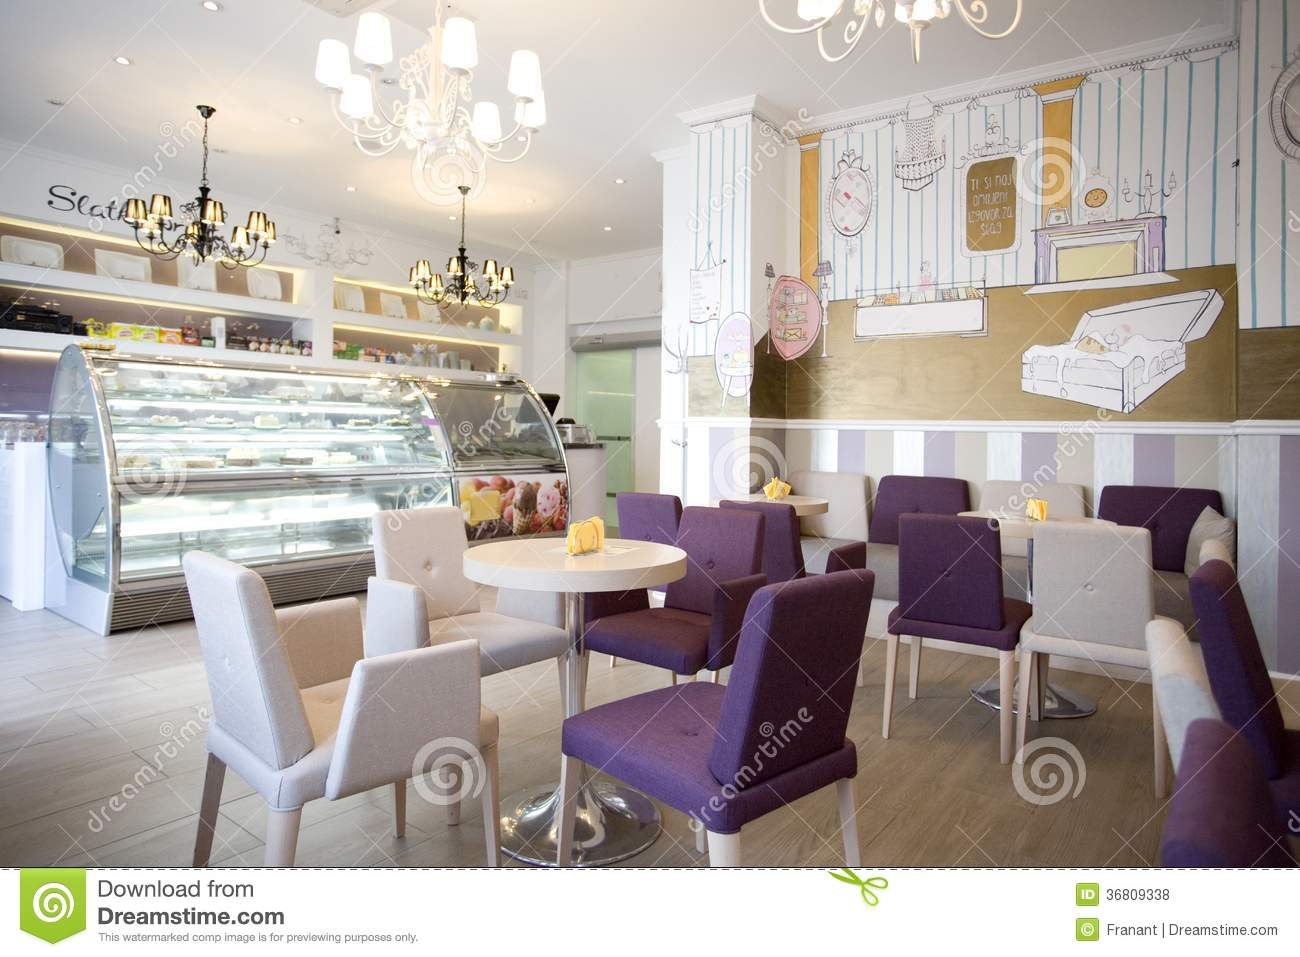 Interior design royalty free stock photos image 36809338 for Architecture interior design photos